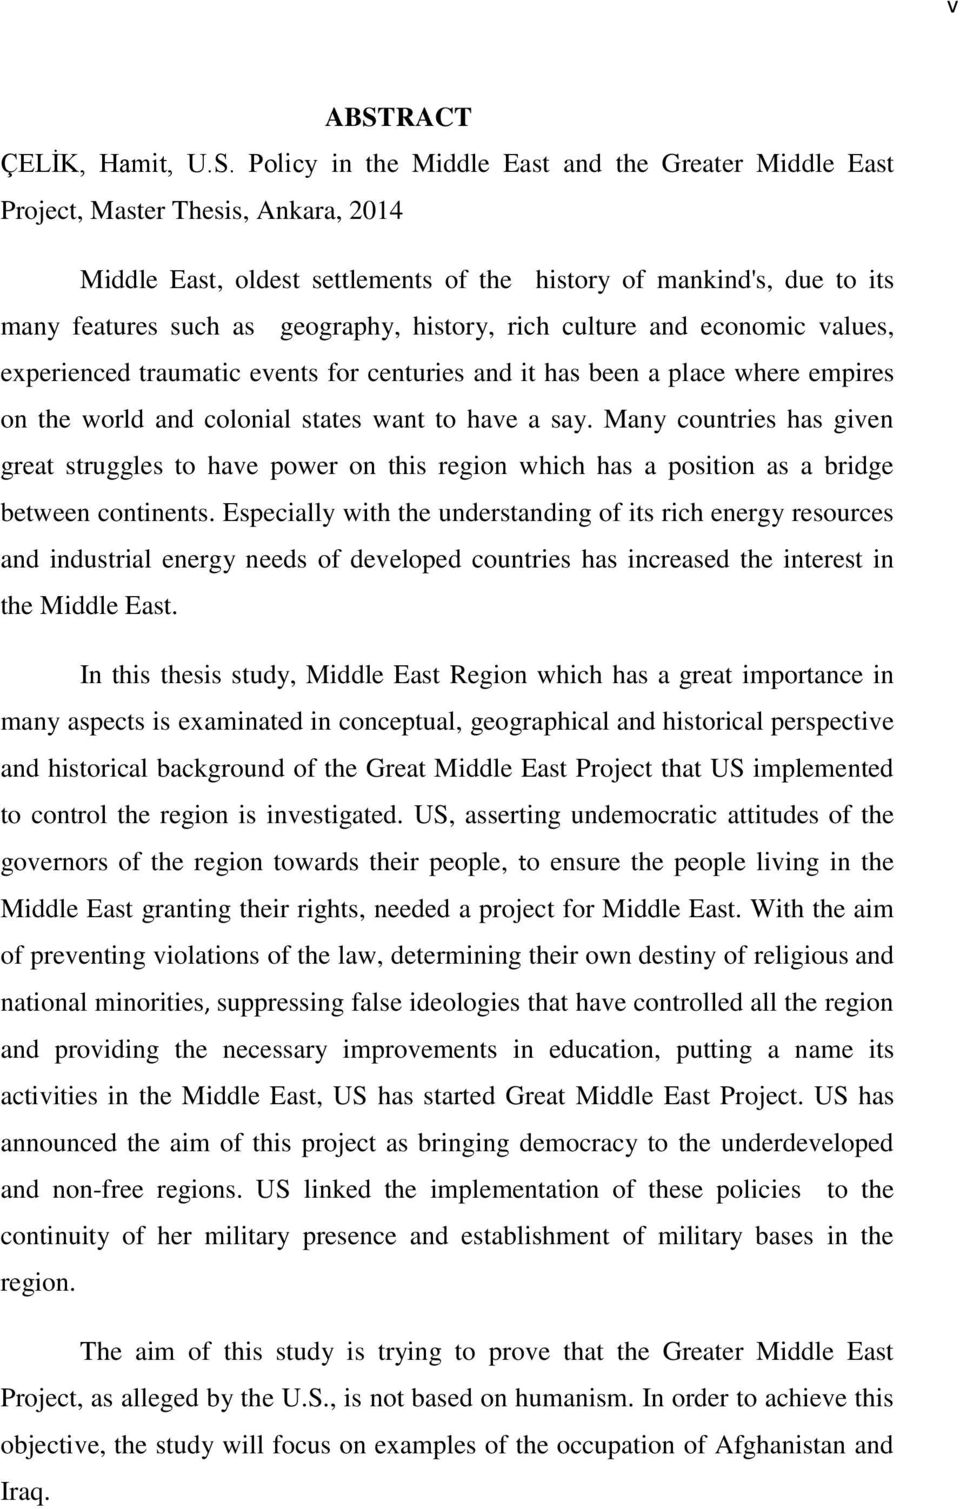 Policy in the Middle East and the Greater Middle East Project, Master Thesis, Ankara, 2014 Middle East, oldest settlements of the history of mankind's, due to its many features such as geography,